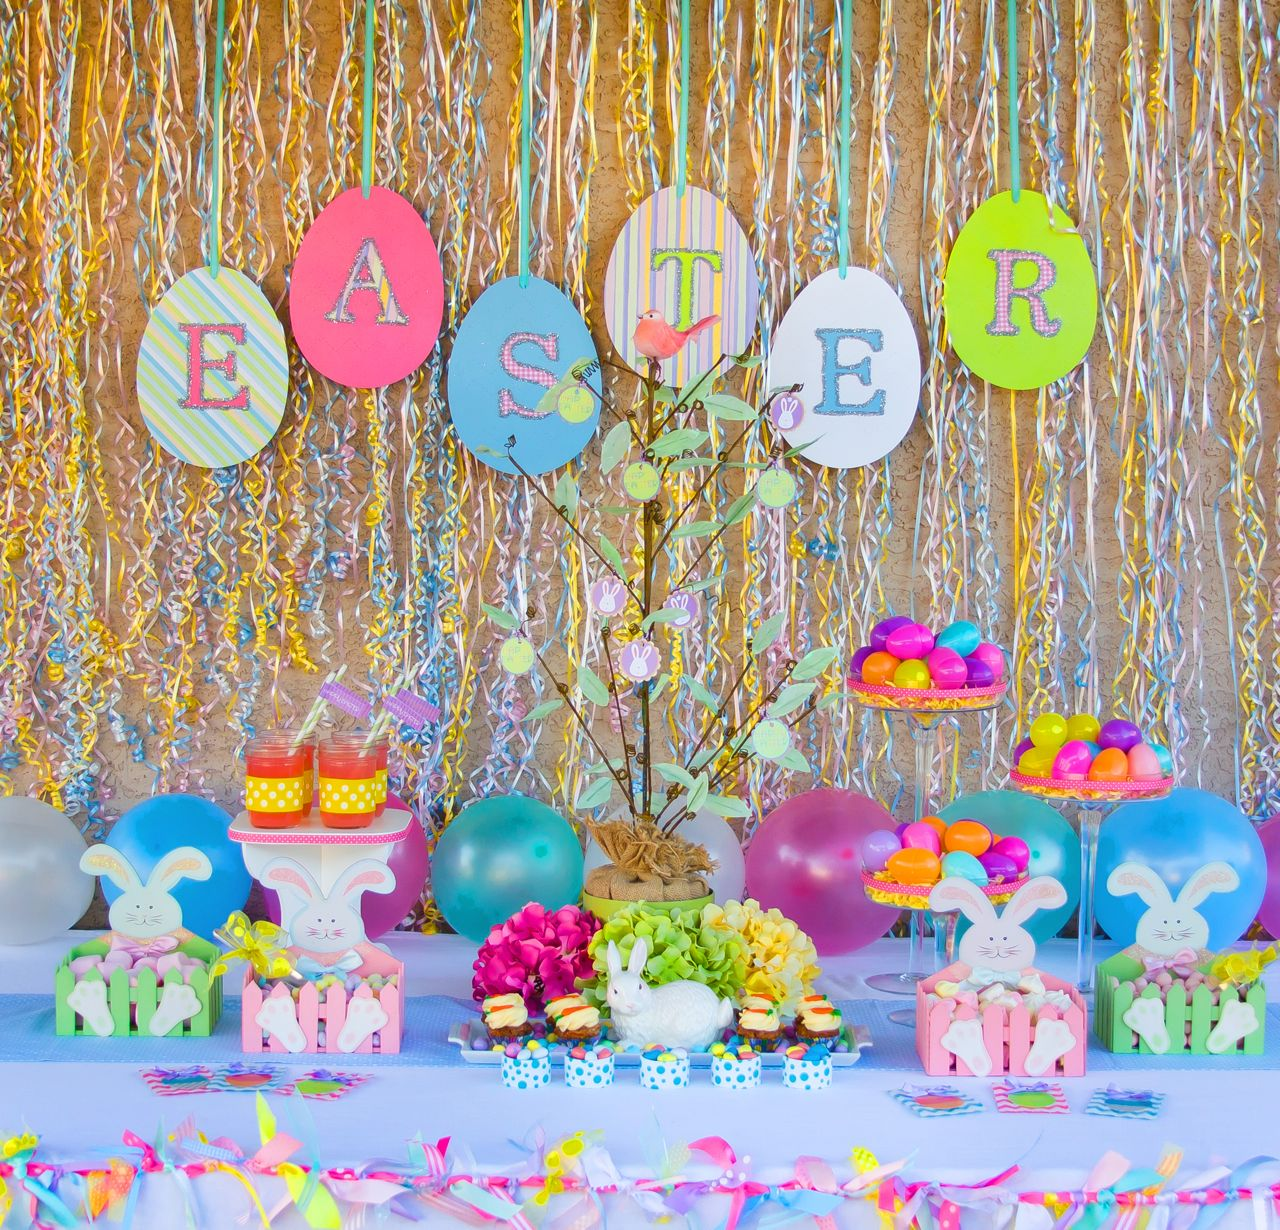 Patriotic Home Decor Ideas Easter Party Ideas Oh My Creative